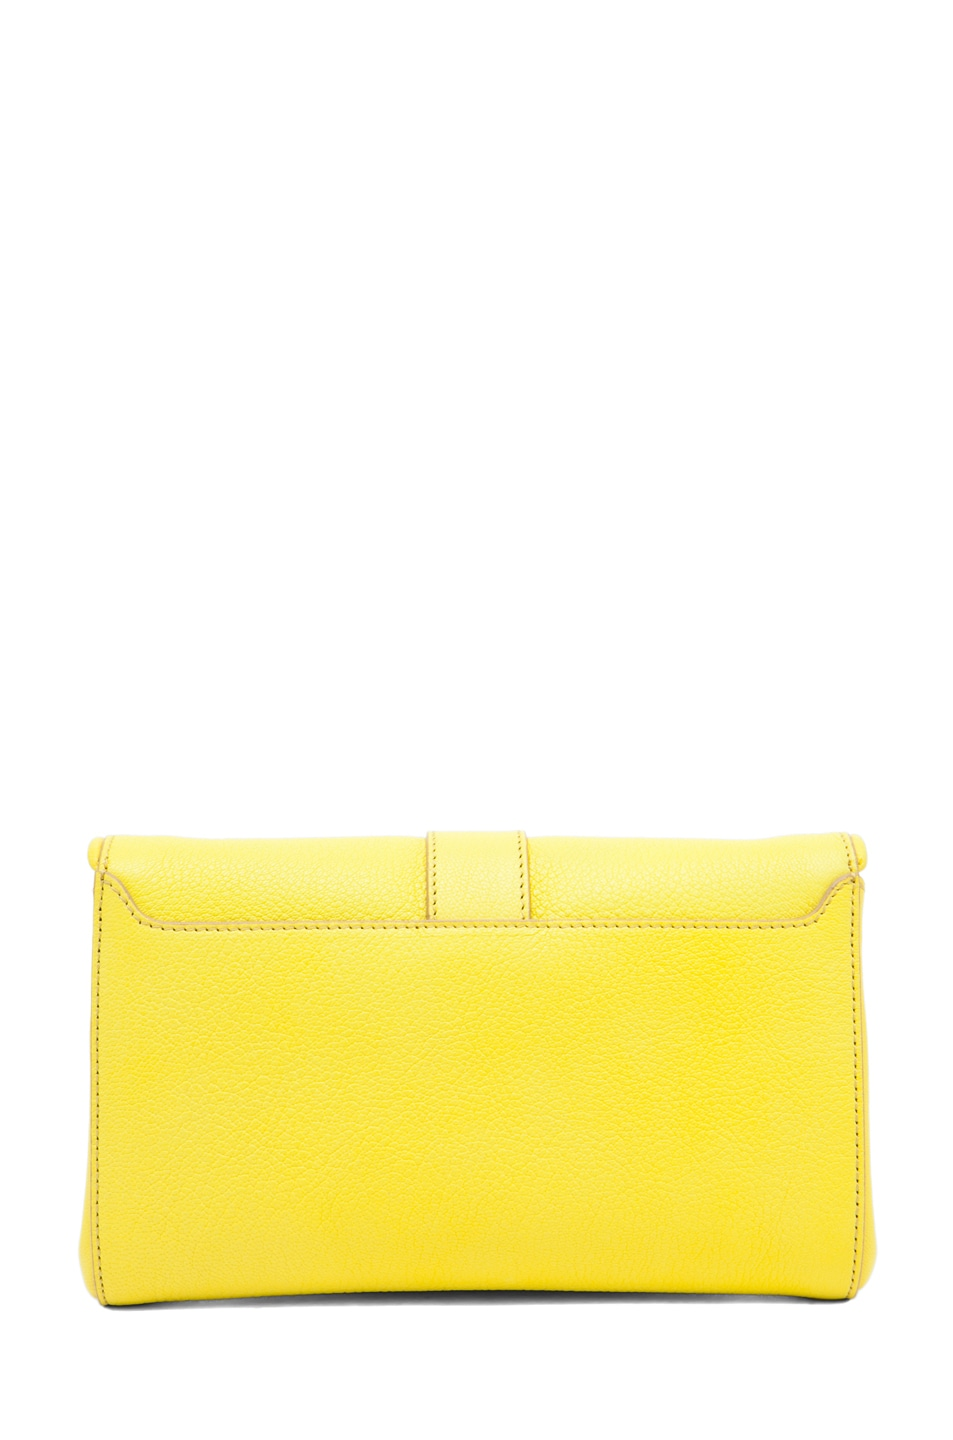 Image 3 of GIVENCHY Obsedia Clutch in Yellow